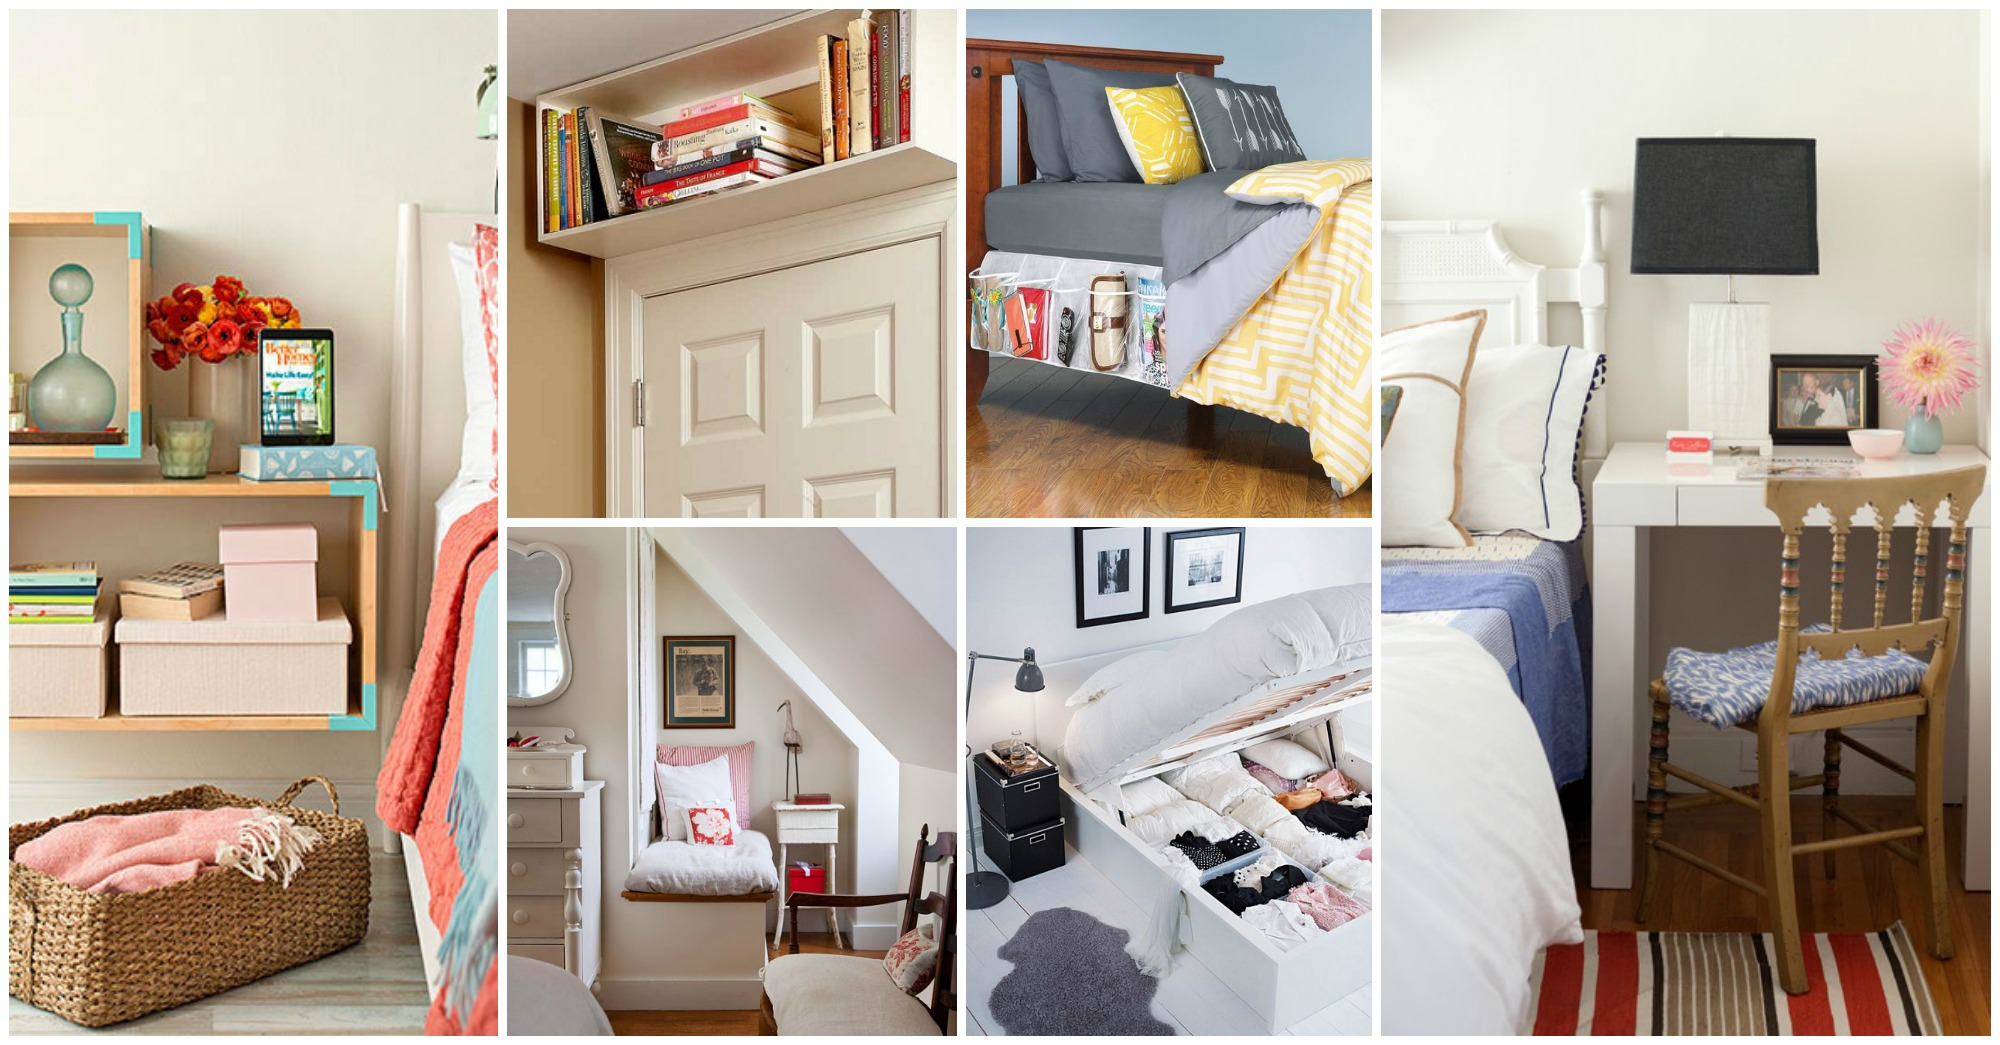 Amazing Bedroom Hacks 10 Genius Tiny Bedroom Hacks You Need To See Right Now